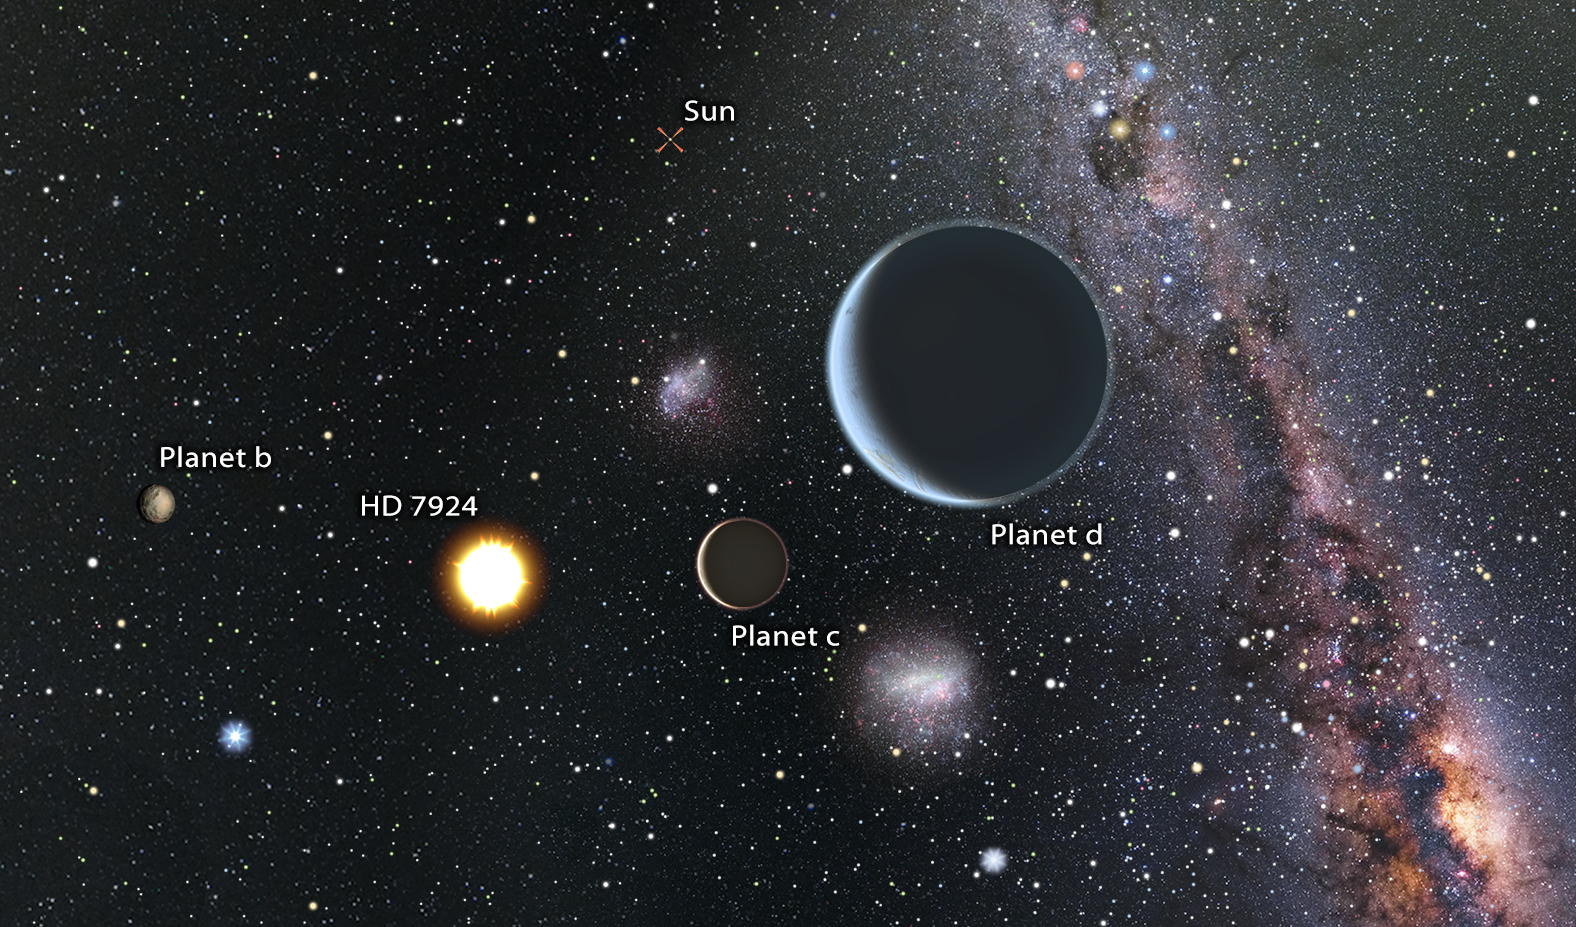 Planets around HD7924